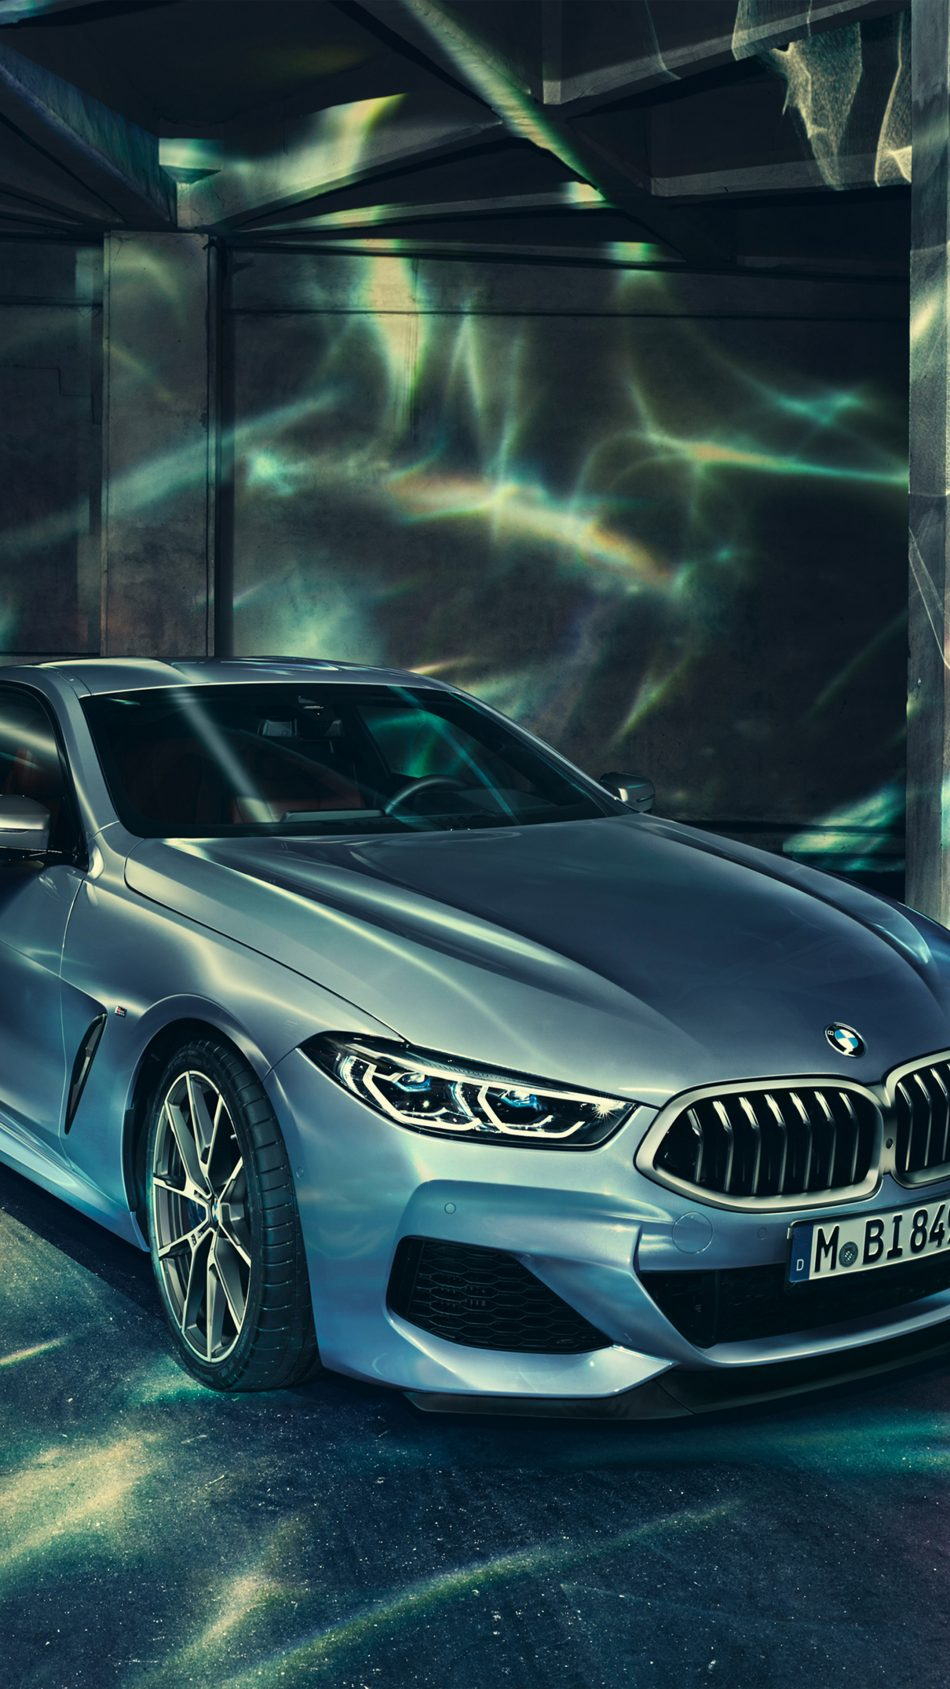 Download Bmw 8 Series 2019 Free Pure 4k Ultra Hd Mobile Wallpaper